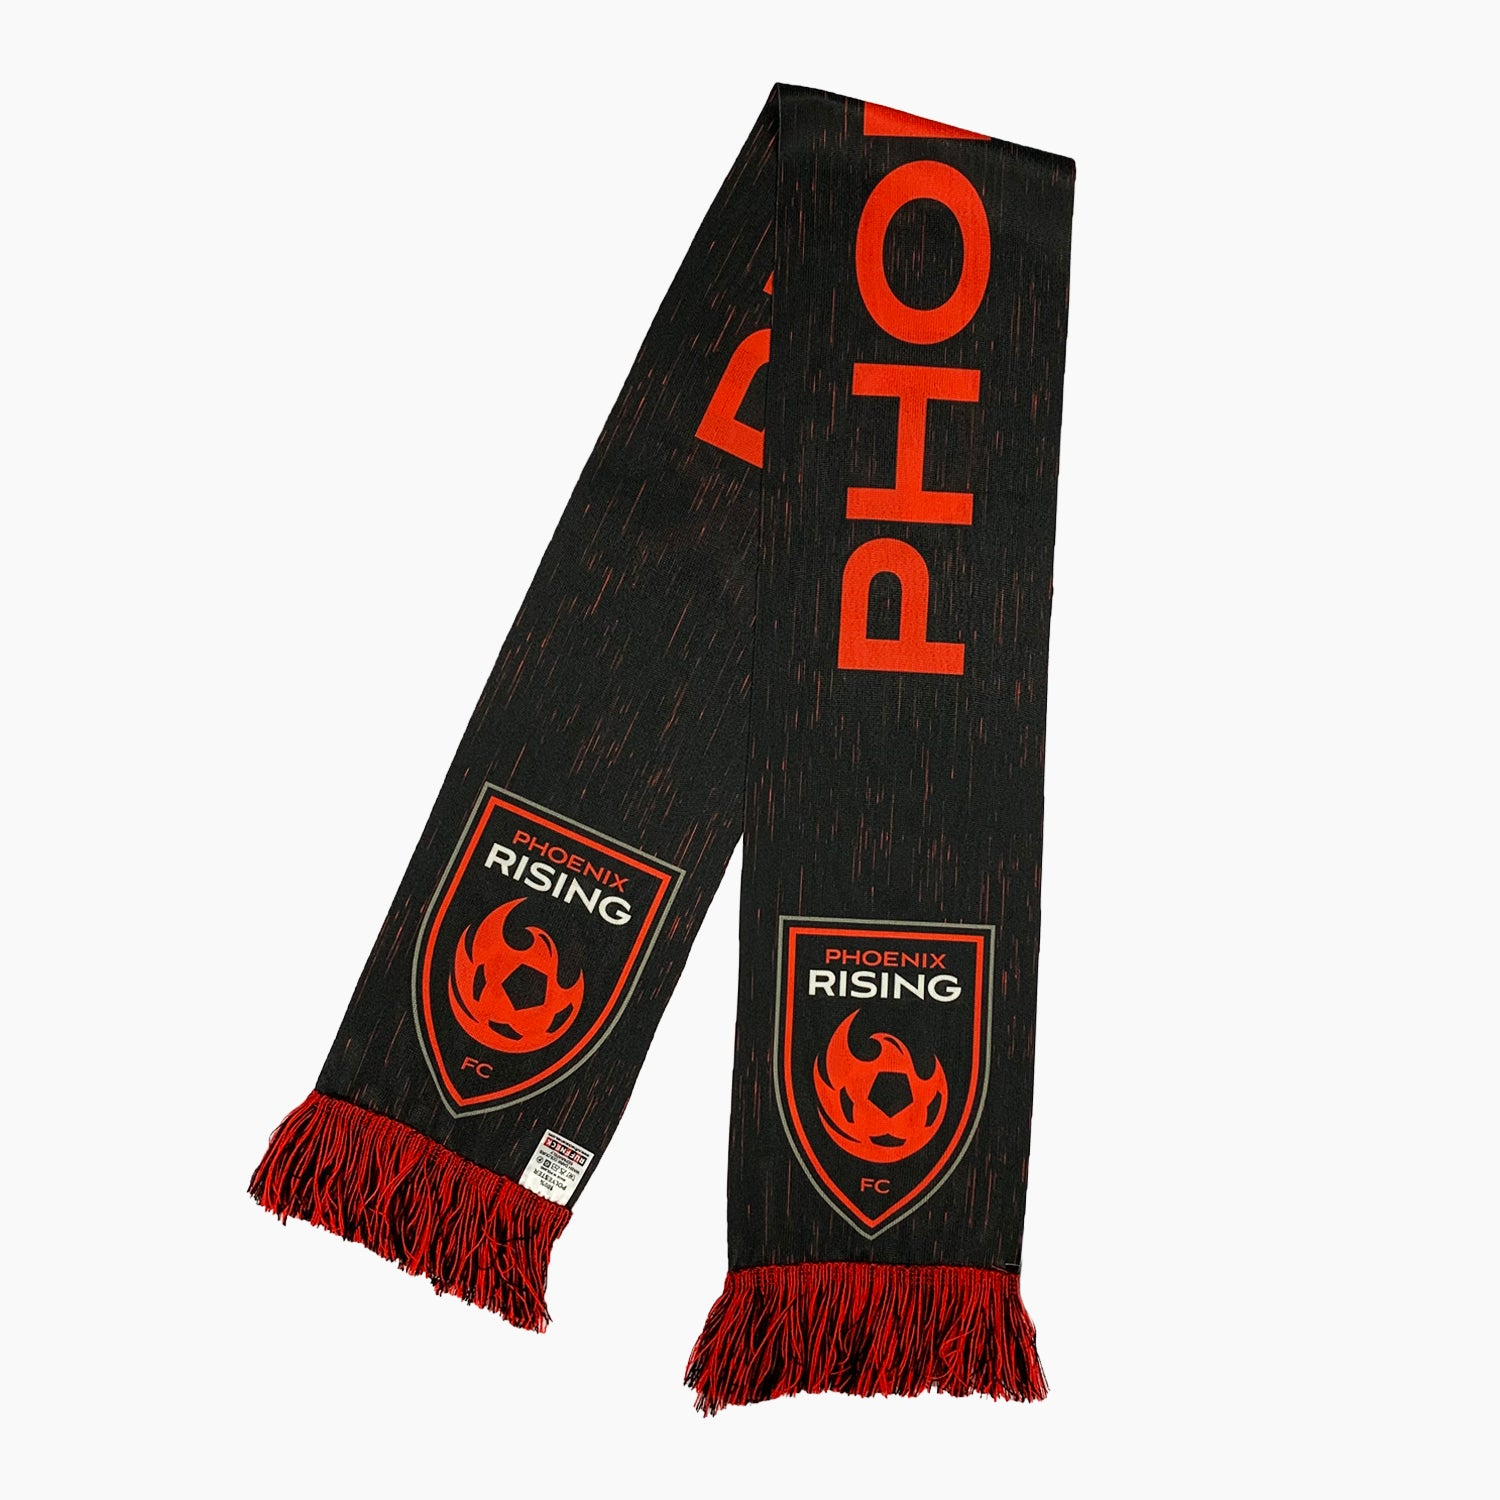 Phoenix Rising Ruffneck Third Kit Scarf - Black